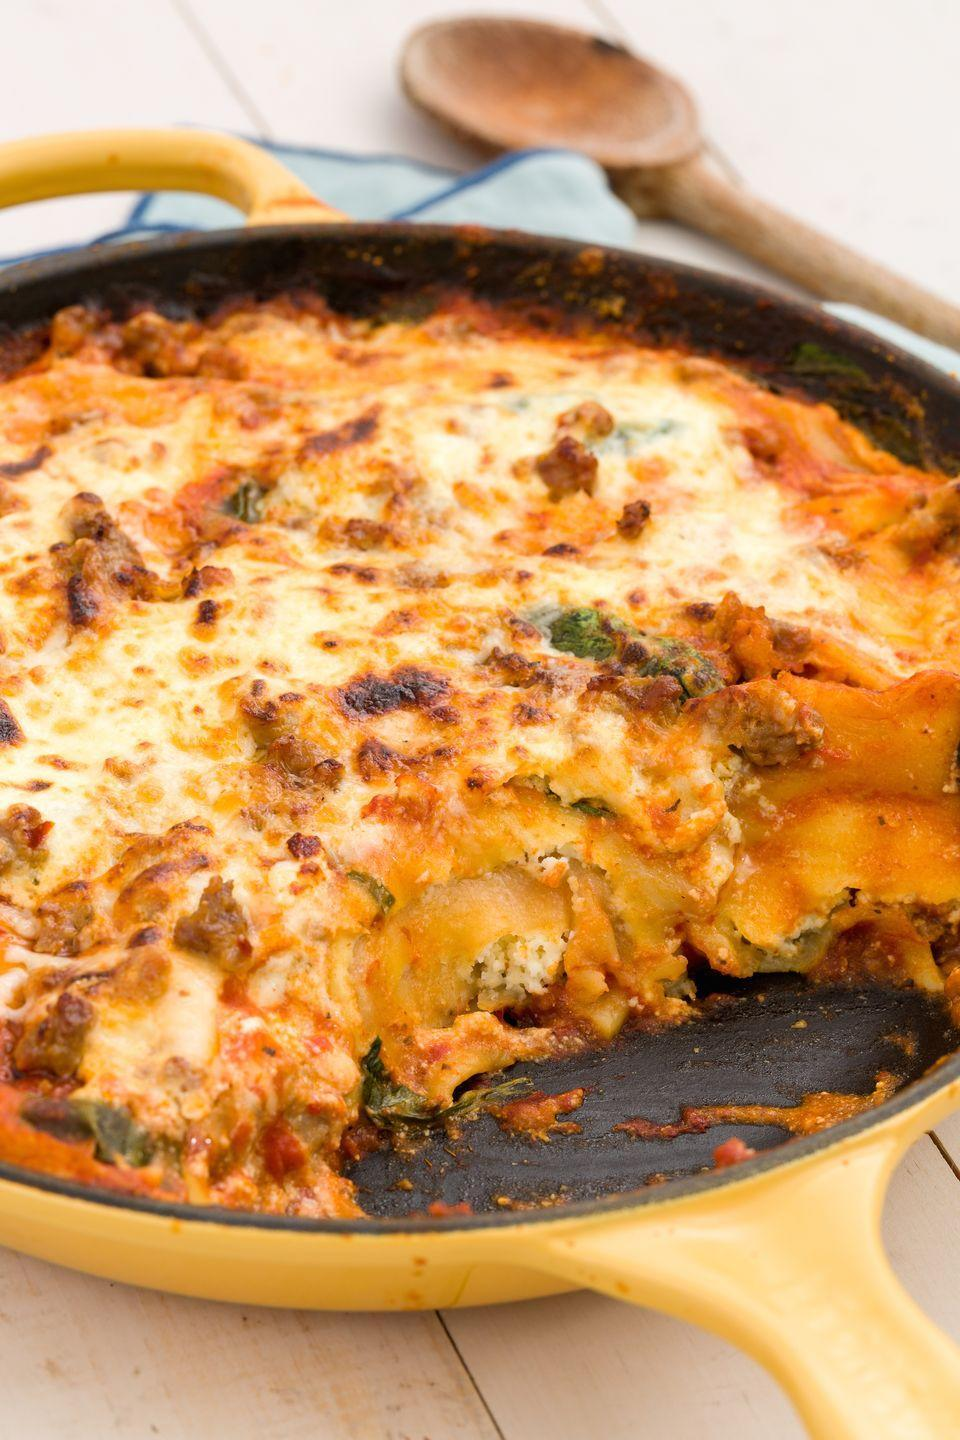 """<p>This cheater's lasagna is genius: You start with simmering marinara in a skillet, add ravioli and cooked sausage, and top it off with cheese for a melty one-pot meal.</p><p>Get the recipe from <a href=""""https://www.delish.com/cooking/recipe-ideas/recipes/a45604/skillet-ravioli-lasagna-with-spicy-italian-sausage-recipe/"""" rel=""""nofollow noopener"""" target=""""_blank"""" data-ylk=""""slk:Delish"""" class=""""link rapid-noclick-resp"""">Delish</a>.</p>"""